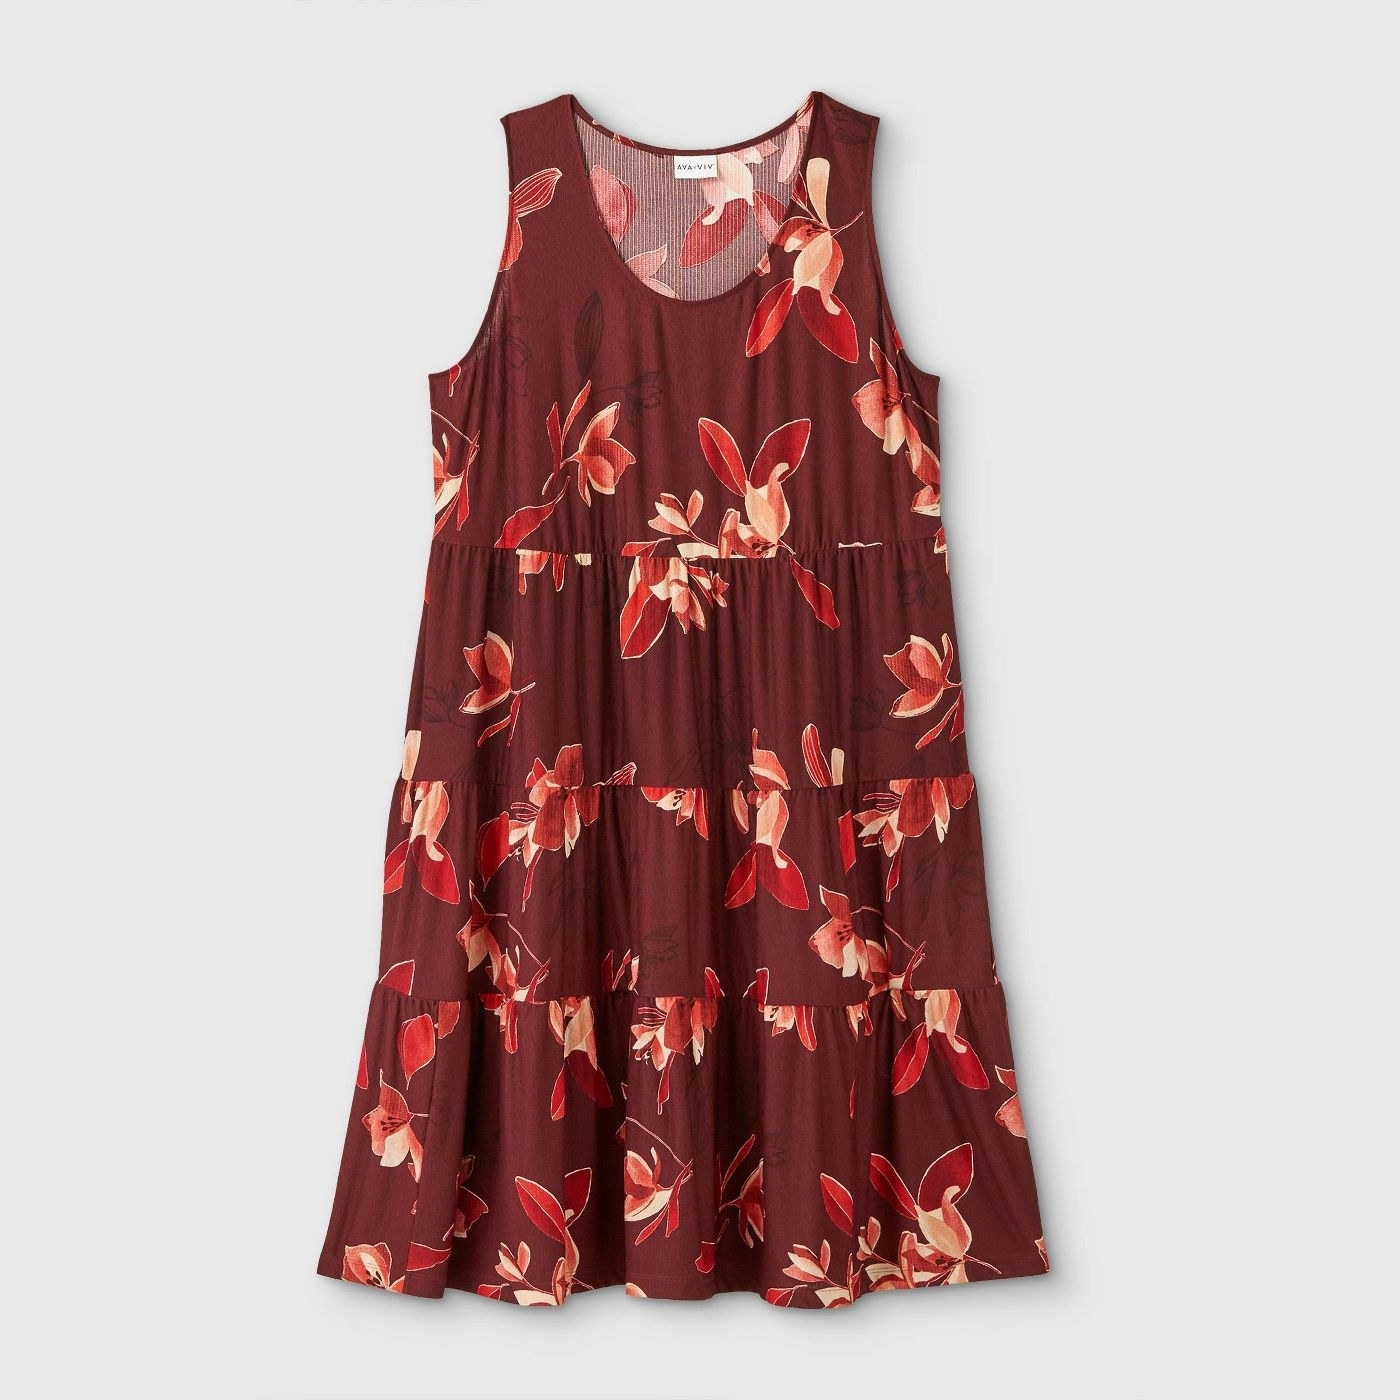 The maroon dress with red and pink floral print